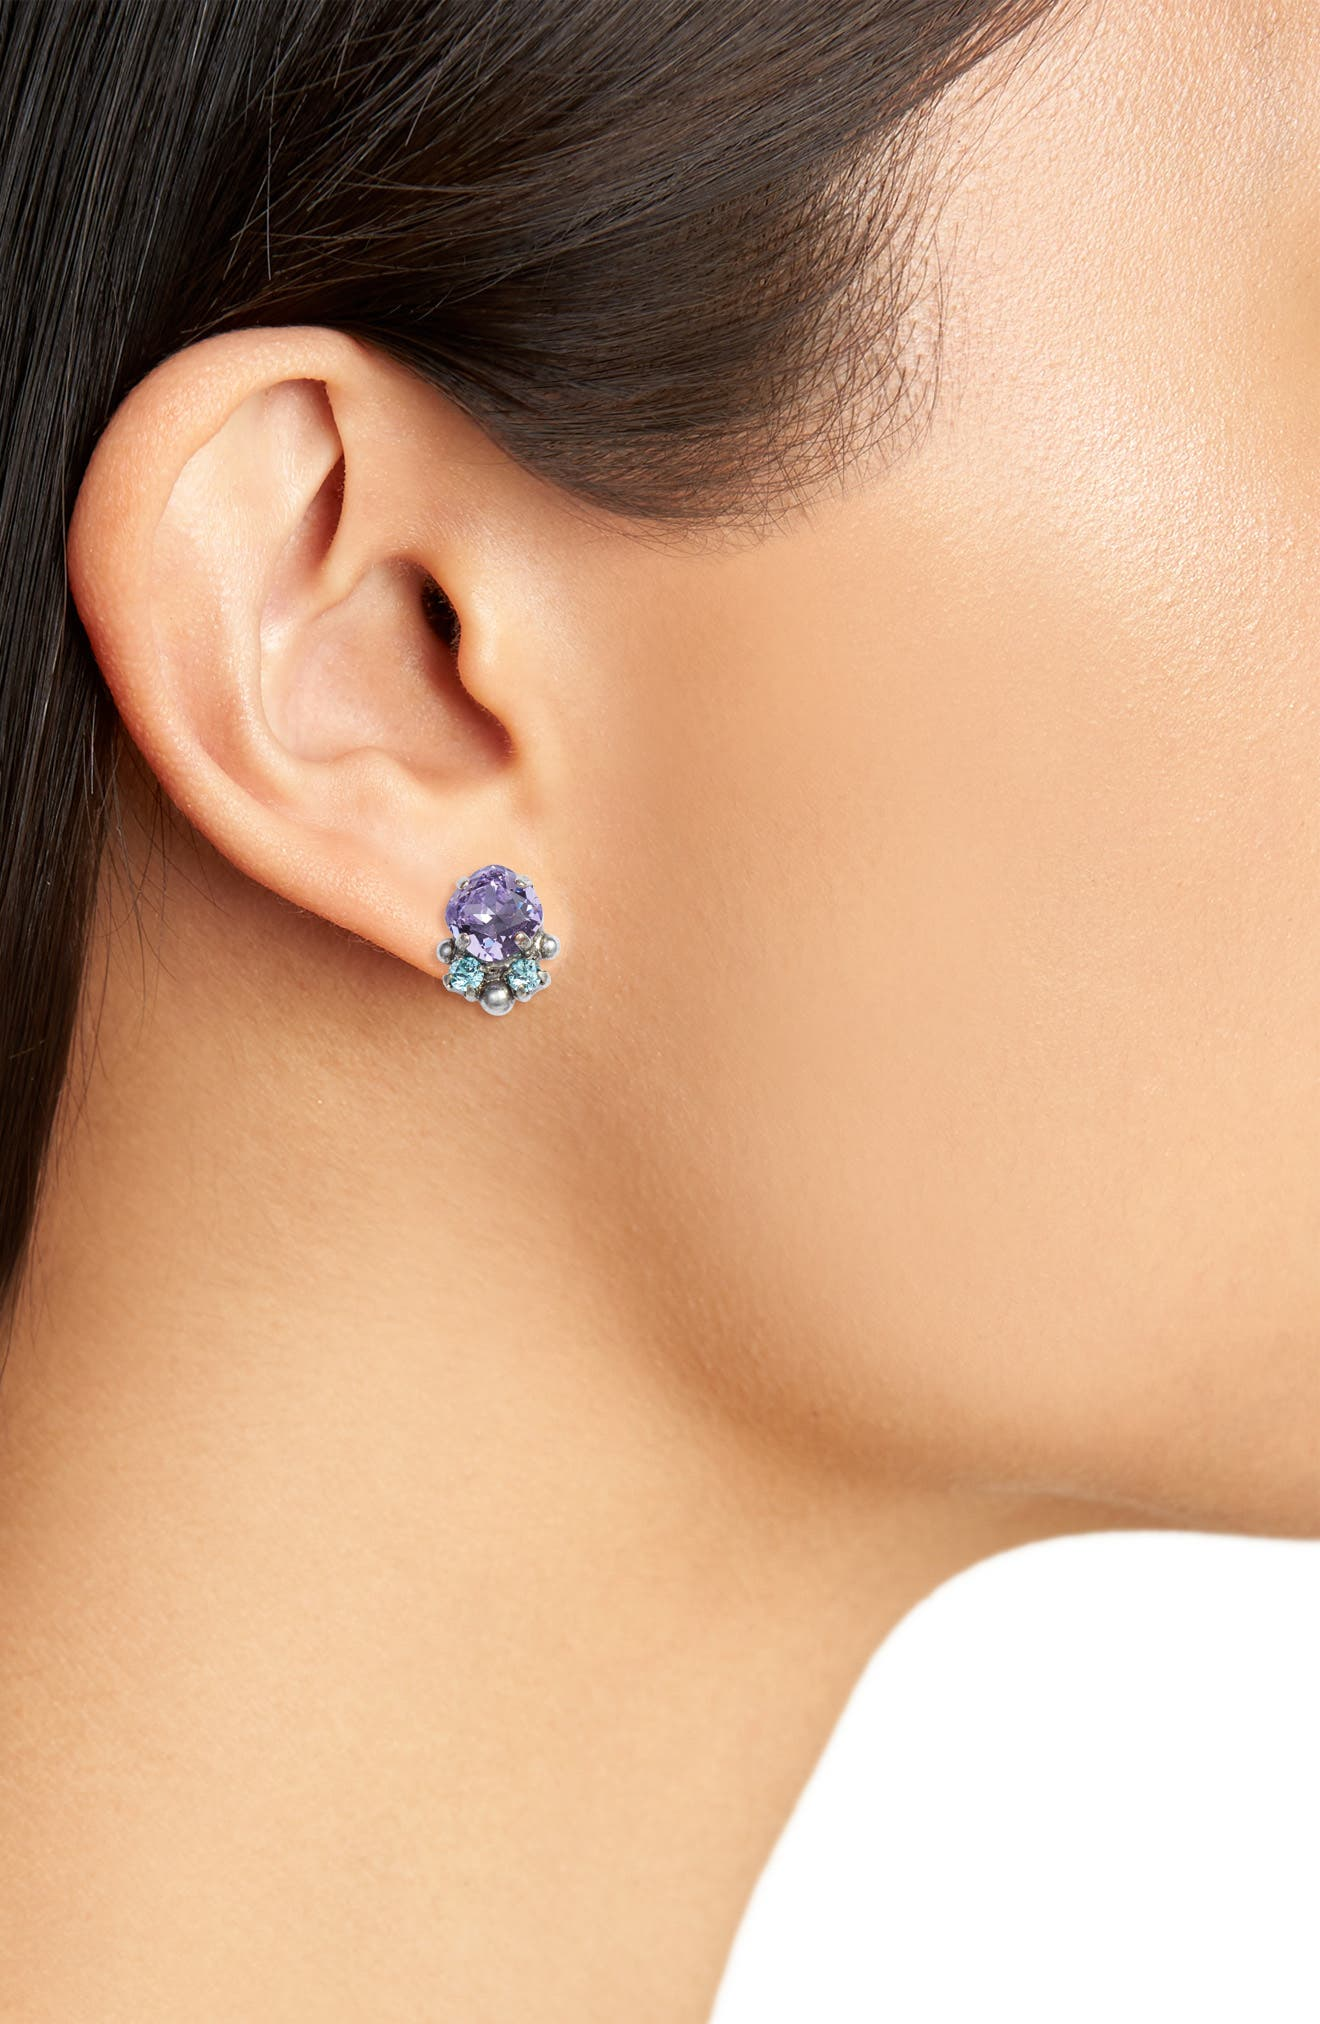 Cushion Cut Crystal Earrings,                             Alternate thumbnail 2, color,                             PURPLE